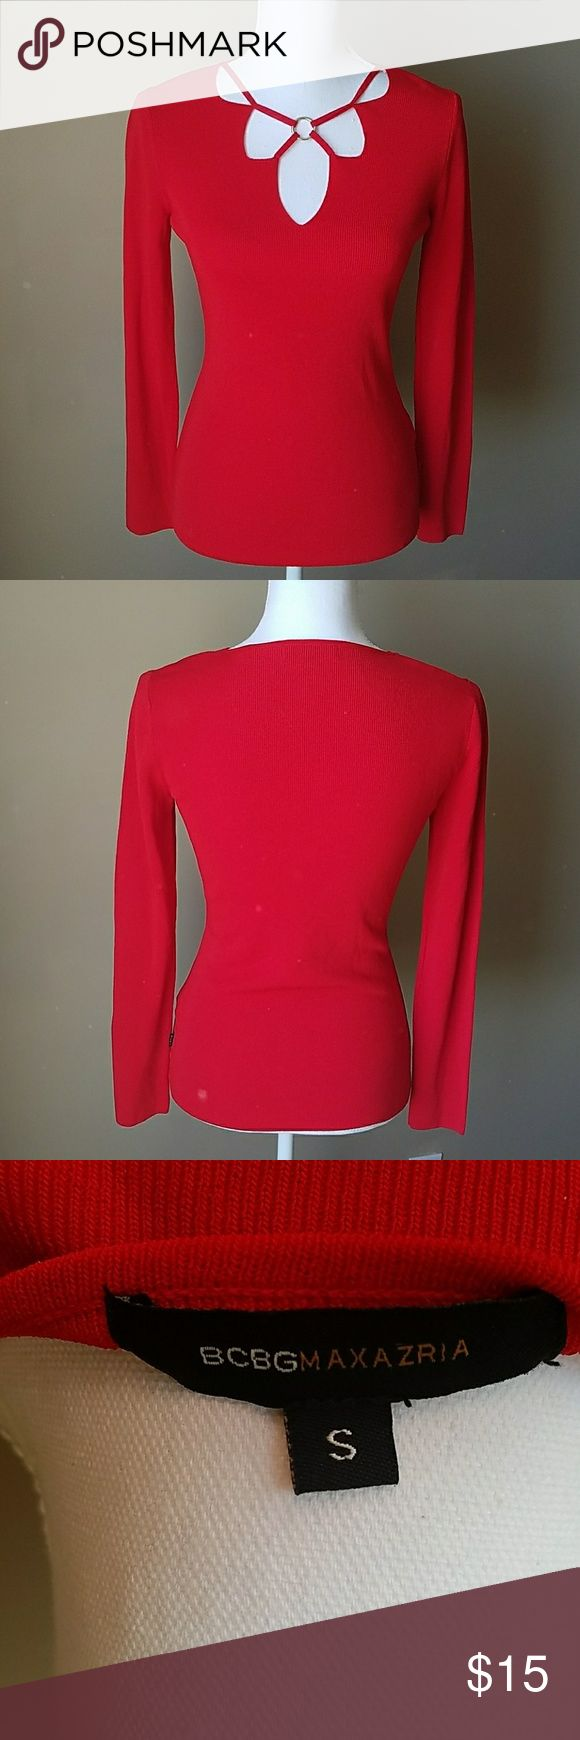 BCBG Maxazria Red Long Sleeve Shirt Christmas or New Years party?! Pair this with a skirt or this amazing pants to stand out this year!!! Bright red long sleeve thick rayon/nylon mix top. Crisscross ring V neck design. EUC. Like new!!! BCBGMaxAzria Tops